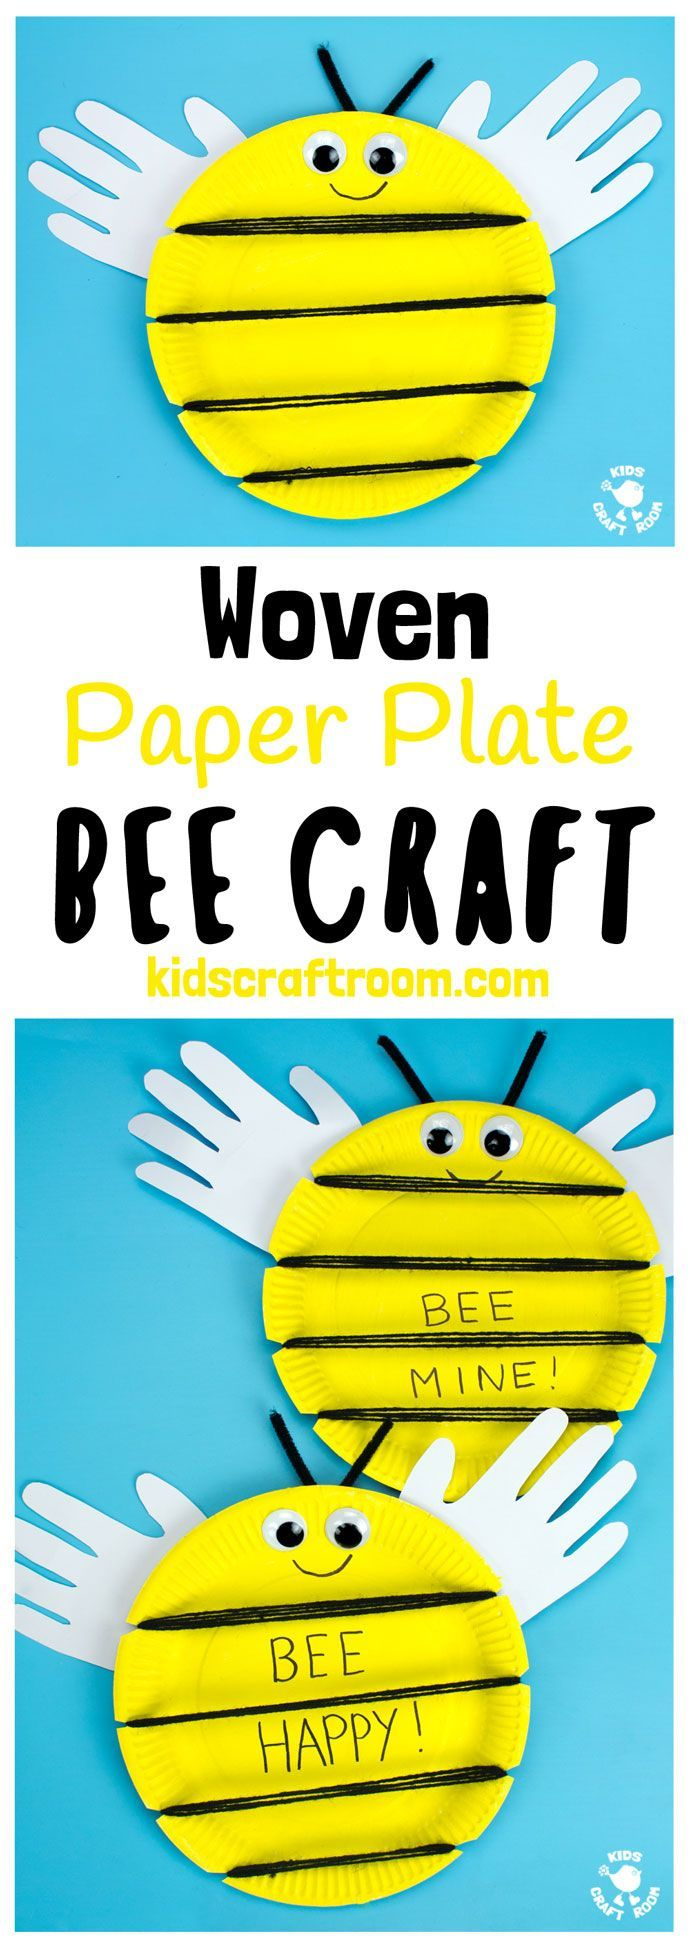 """This Woven Paper Plate Bee Craft has cute handprint wings making it a gorgeous keepsake and because it's woven it's a great insect craft to build fine motor skills too. Its wide yellow stripes leave plenty of room to write personalised messages like """"BEE MINE"""" for Valentine's Day or """"BEE HAPPY"""" for a birthday! Such fun! #bee #beecrafts #paperplatecrafts #handprintcrafts #valentinesdaycrafts #valentinesforkids #valentinecrafts #insectcrafts #finemotorskills #kidscrafts101 via @KidsCraftRoom"""